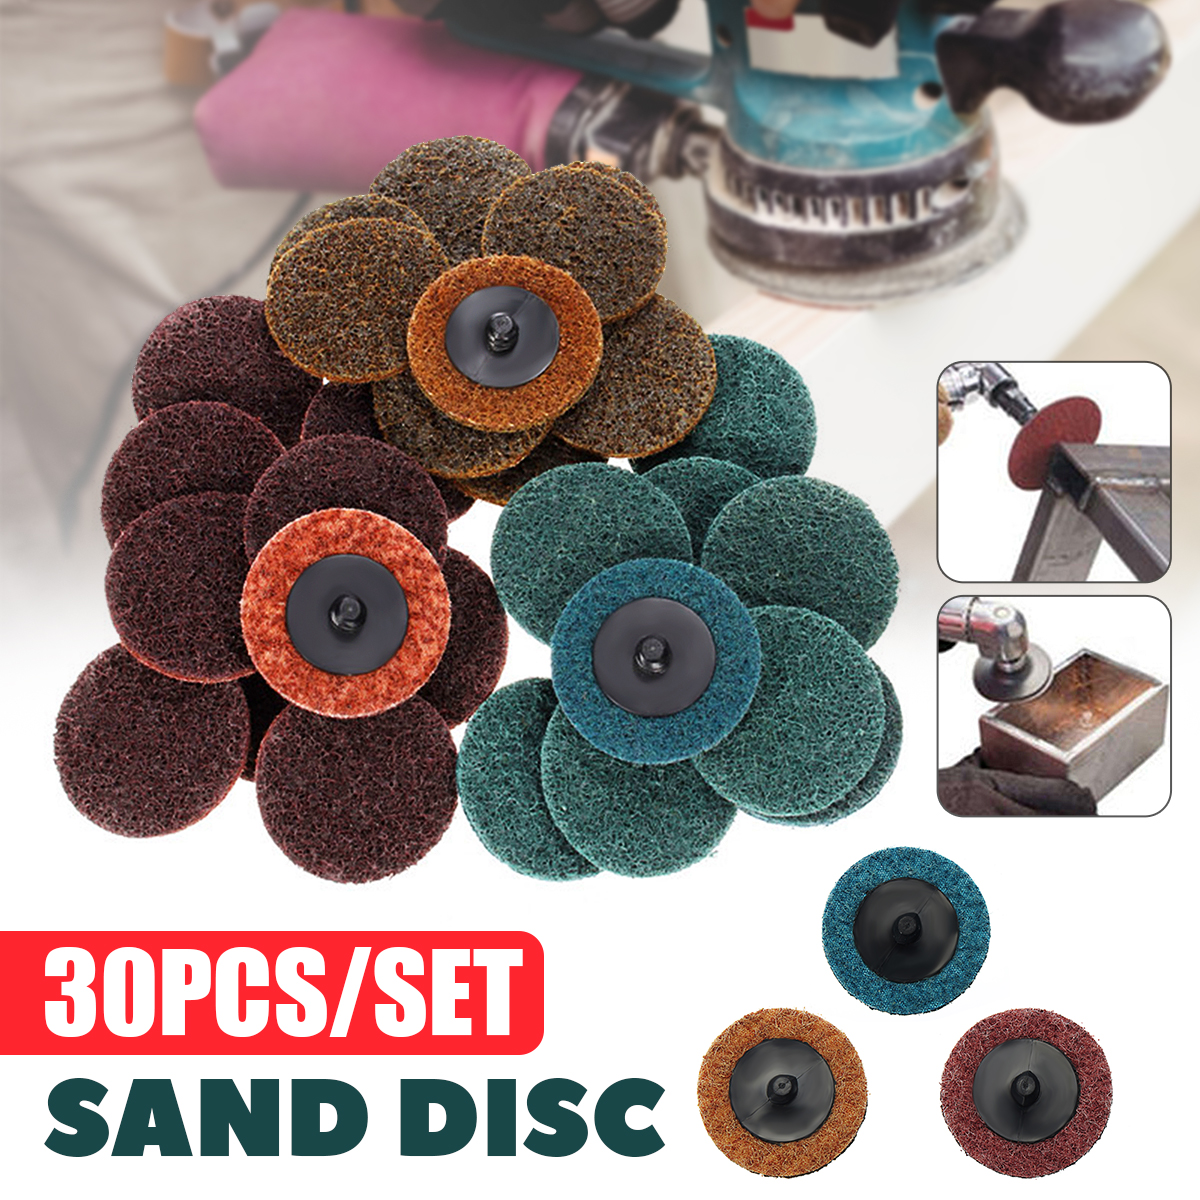 30 x 2 Sanding Roloc Roll Disc Surface Conditioning Fine Medium Coarse Prep Pad Colors <font><b>25</b></font>,<font><b>000</b></font> RPM Prep Gasket Coating Removal image